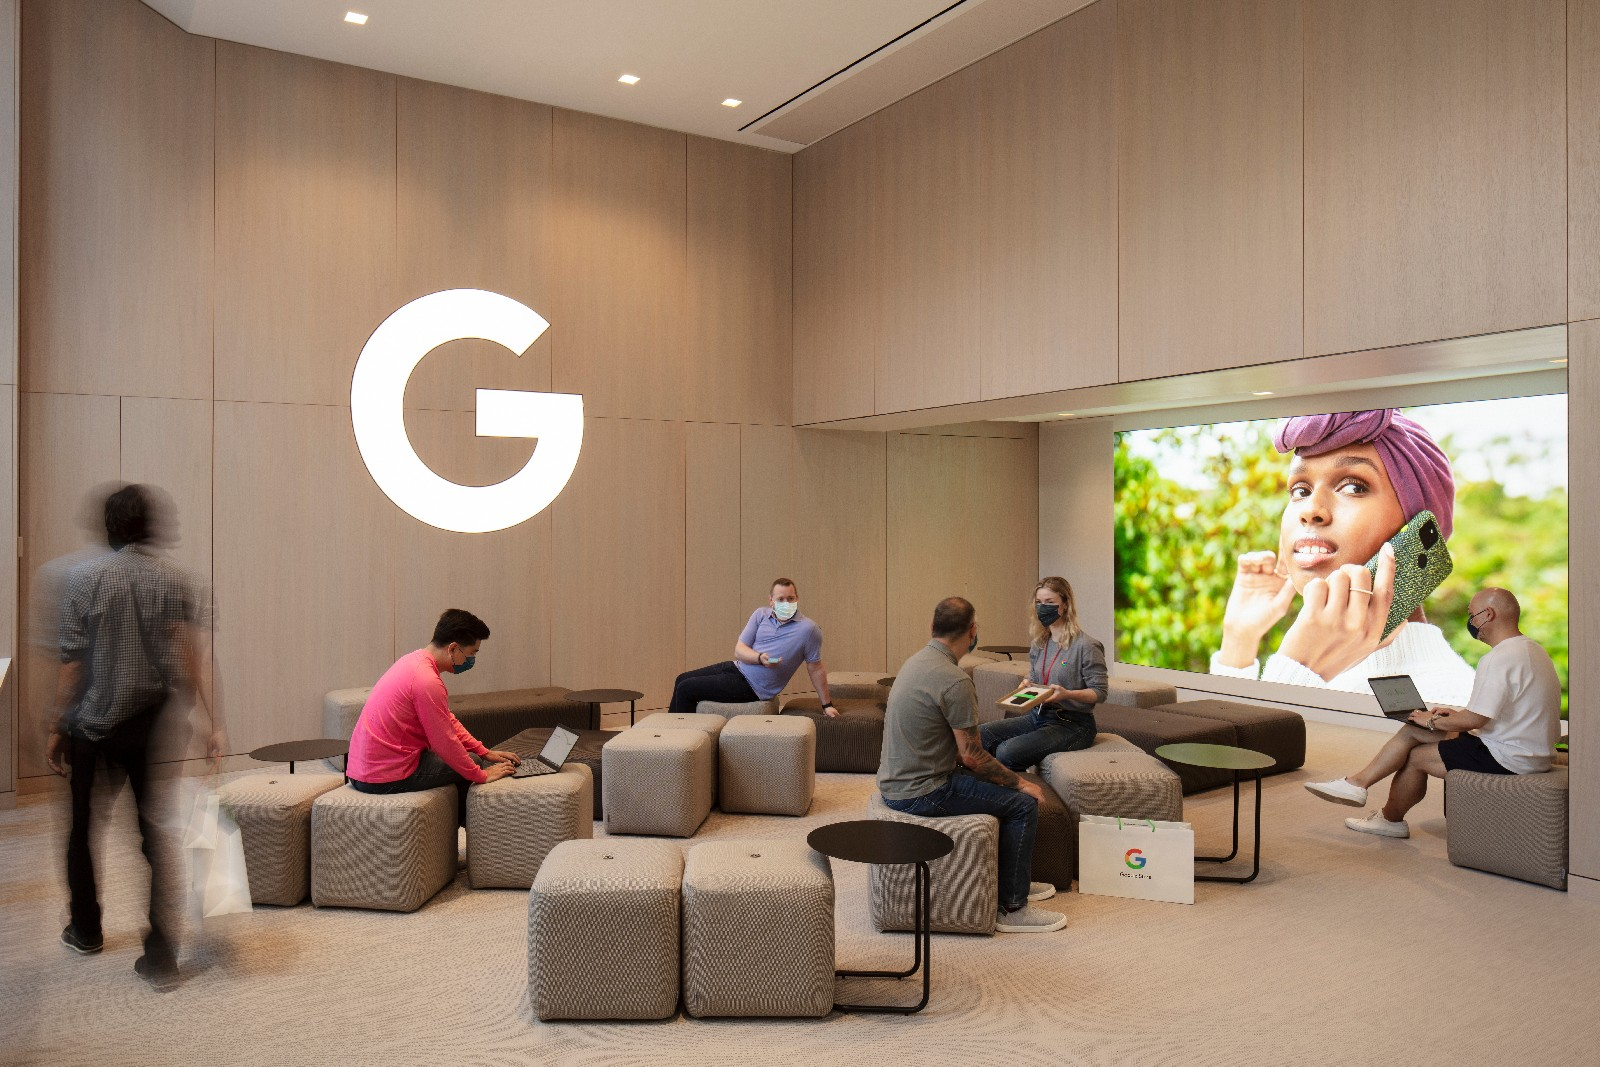 <p>Google Store Chelsea. A workshop area with several ottomans and small tables. The Google logo (letter G only) on the wall is lit in a soft white. Six people ar eseated at various spots in the room.</p>